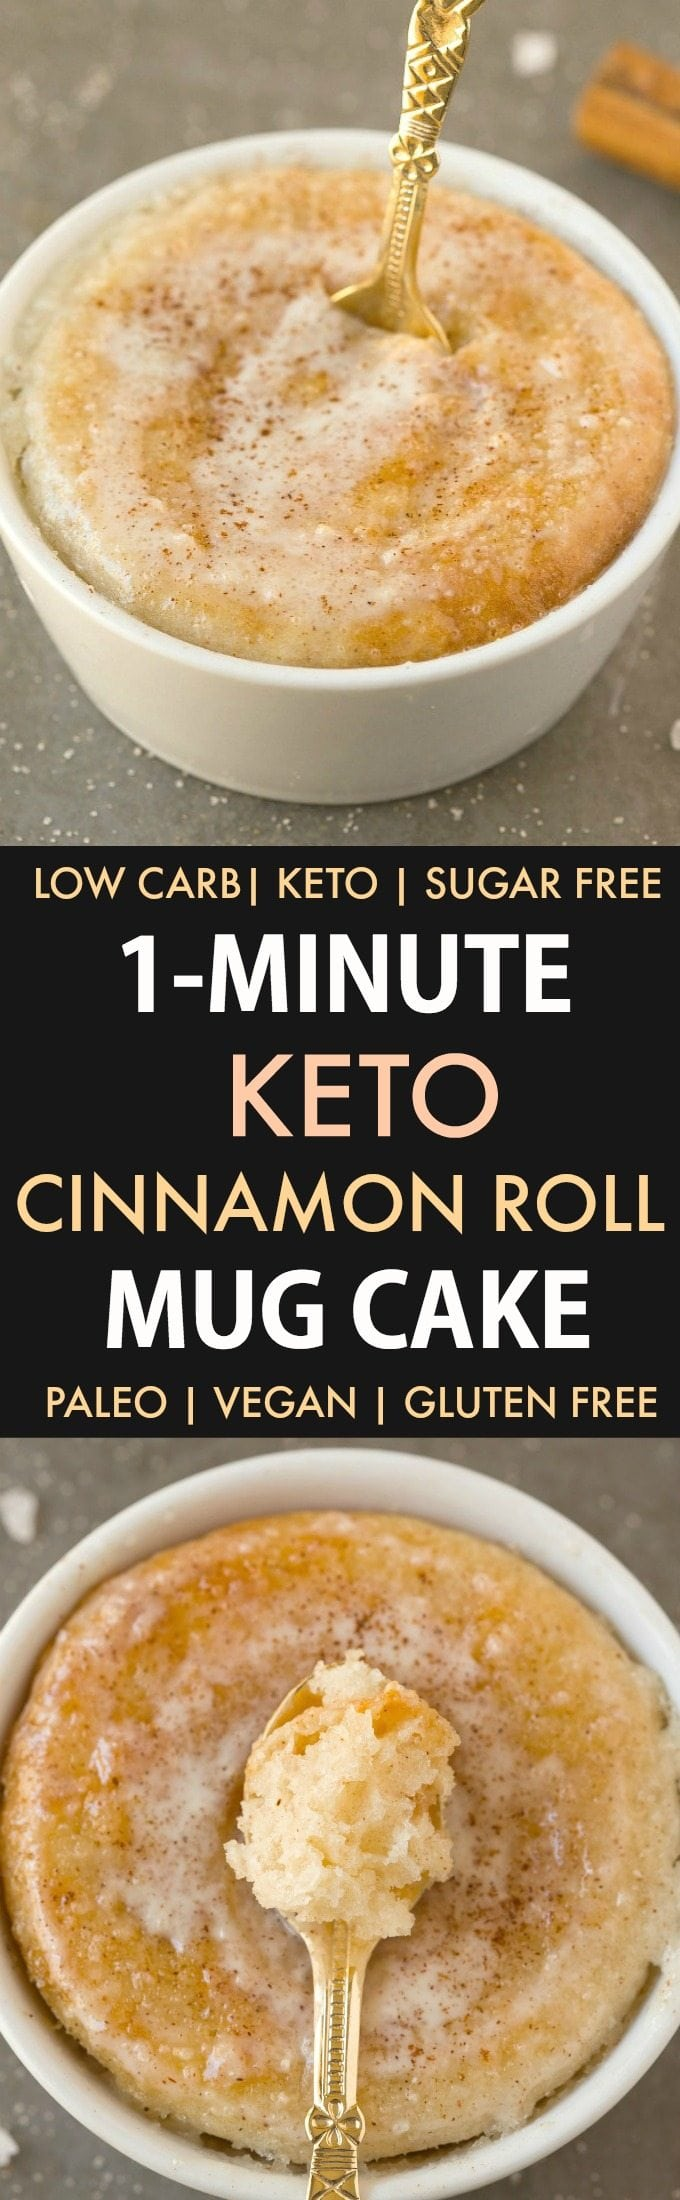 Healthy 1 Minute Low Carb Keto Mug Cakes (Paleo, Vegan ...